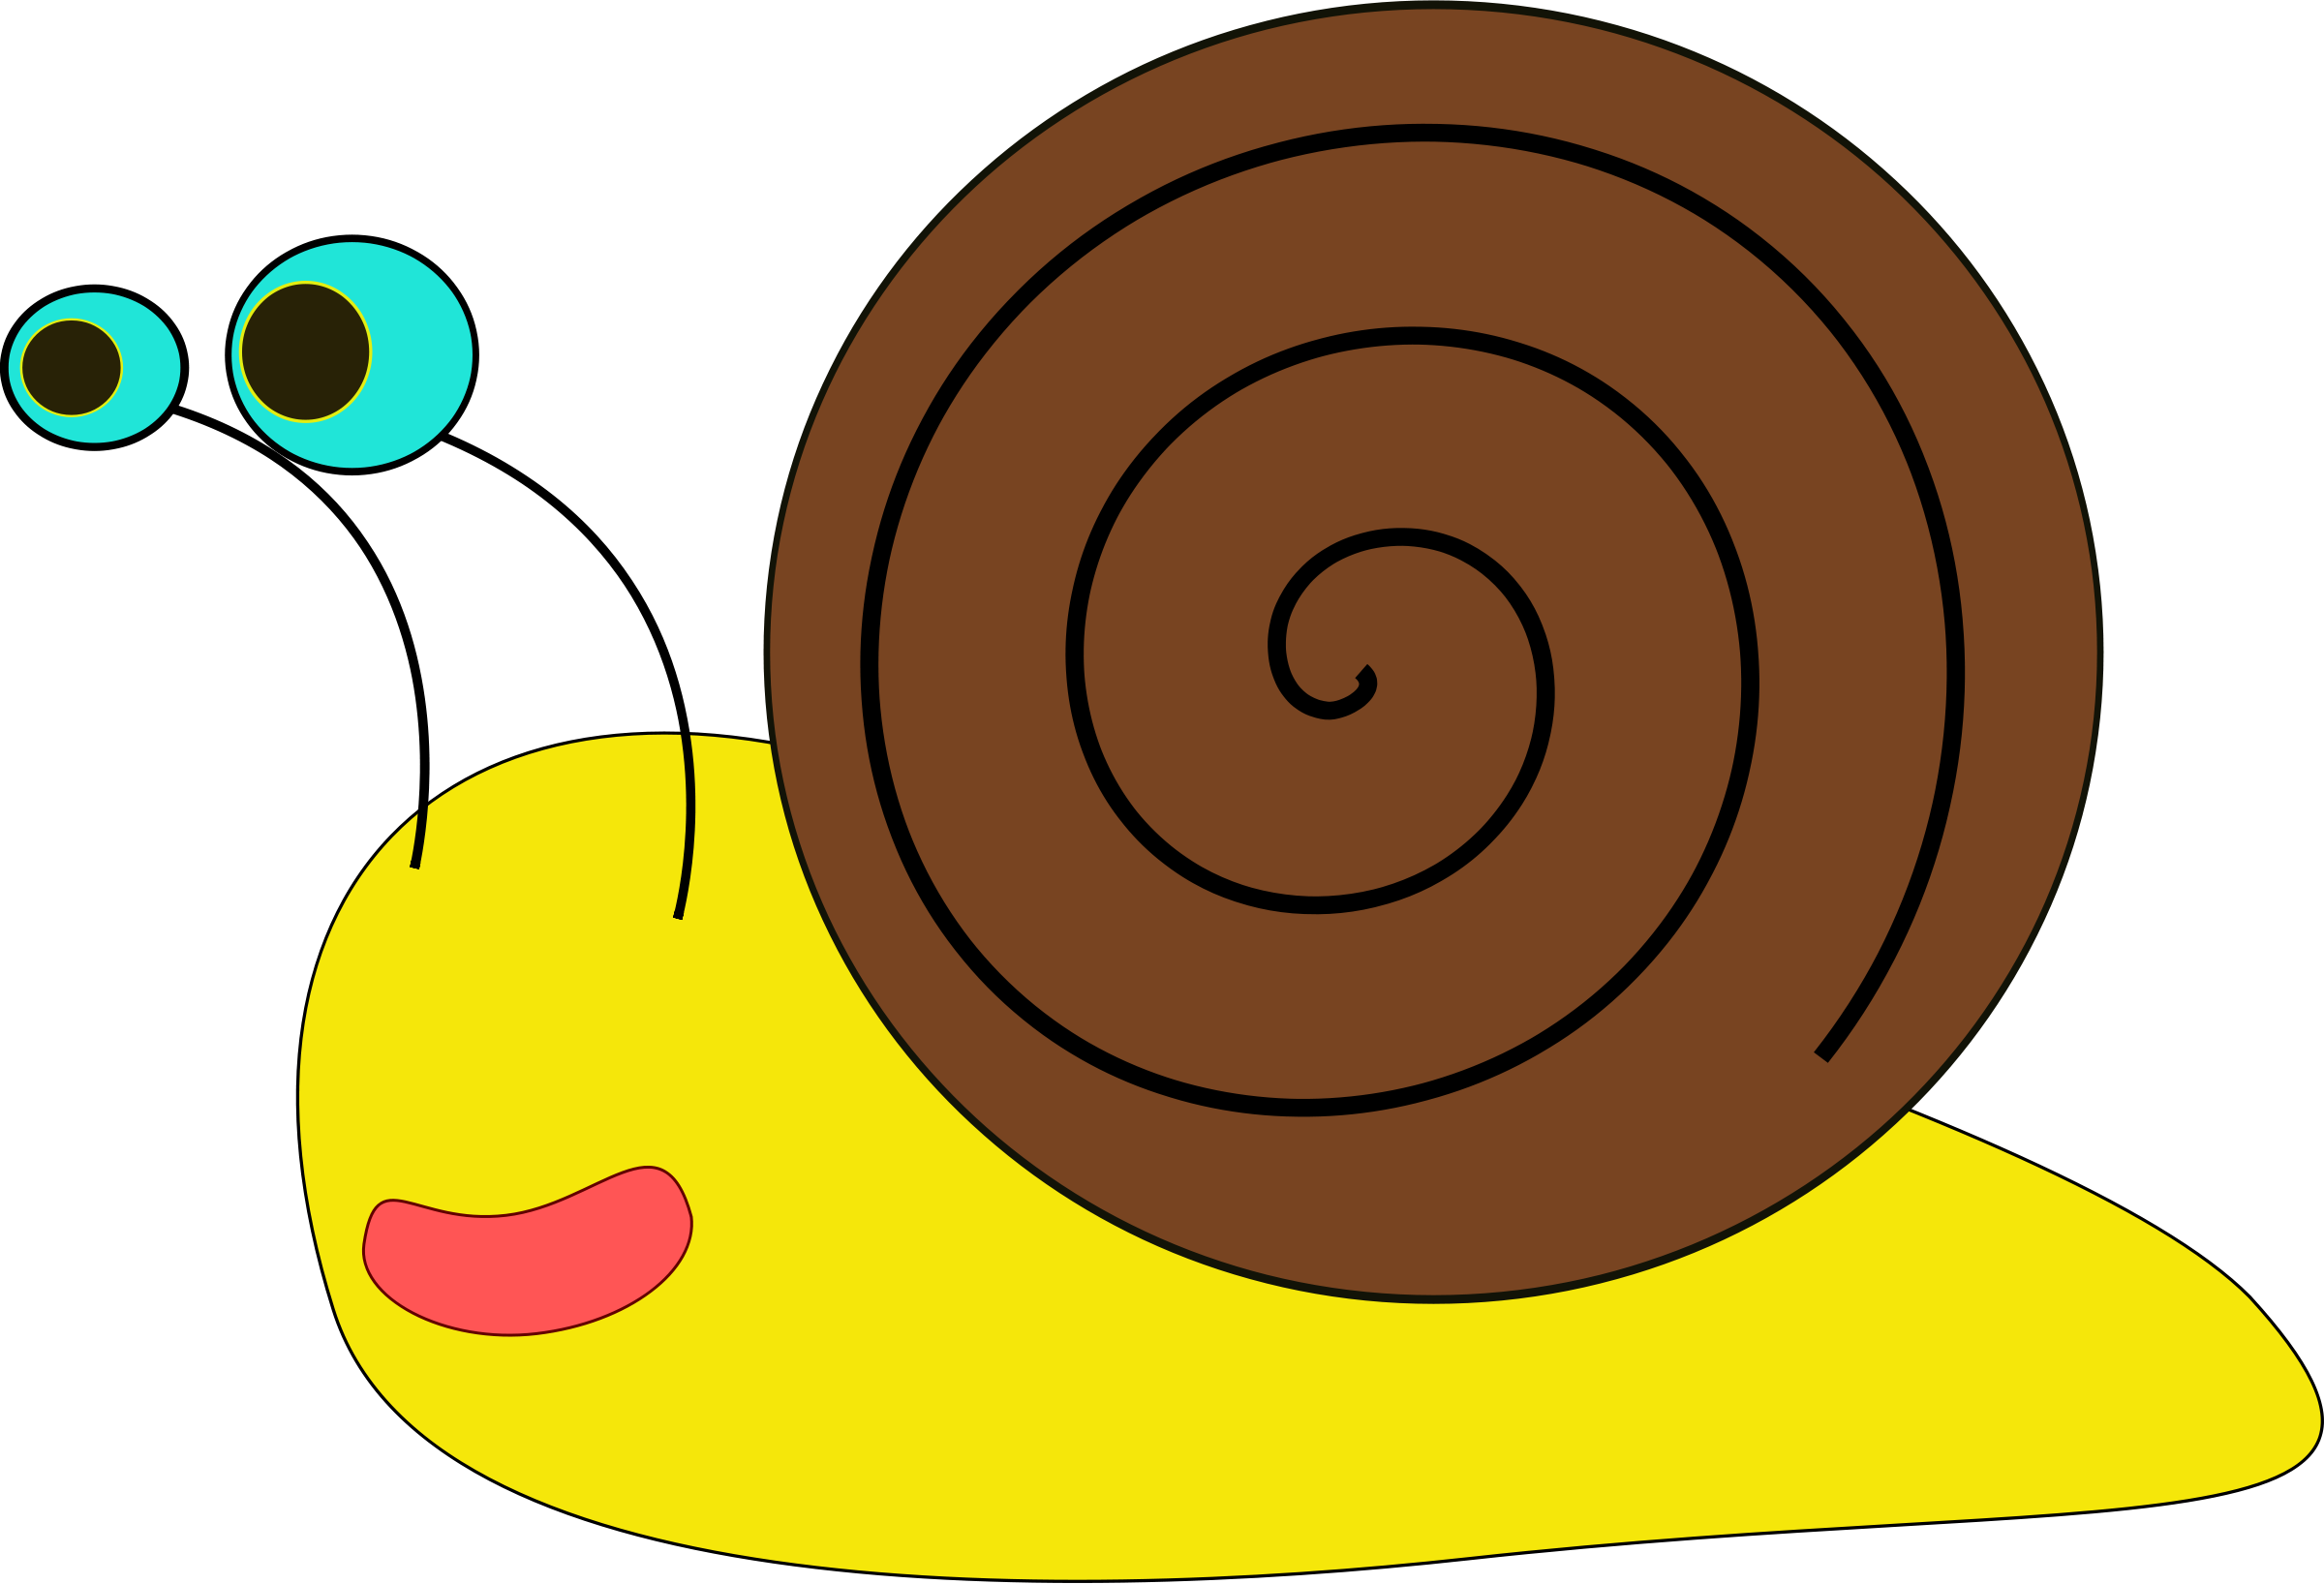 Snail clipart #5, Download drawings